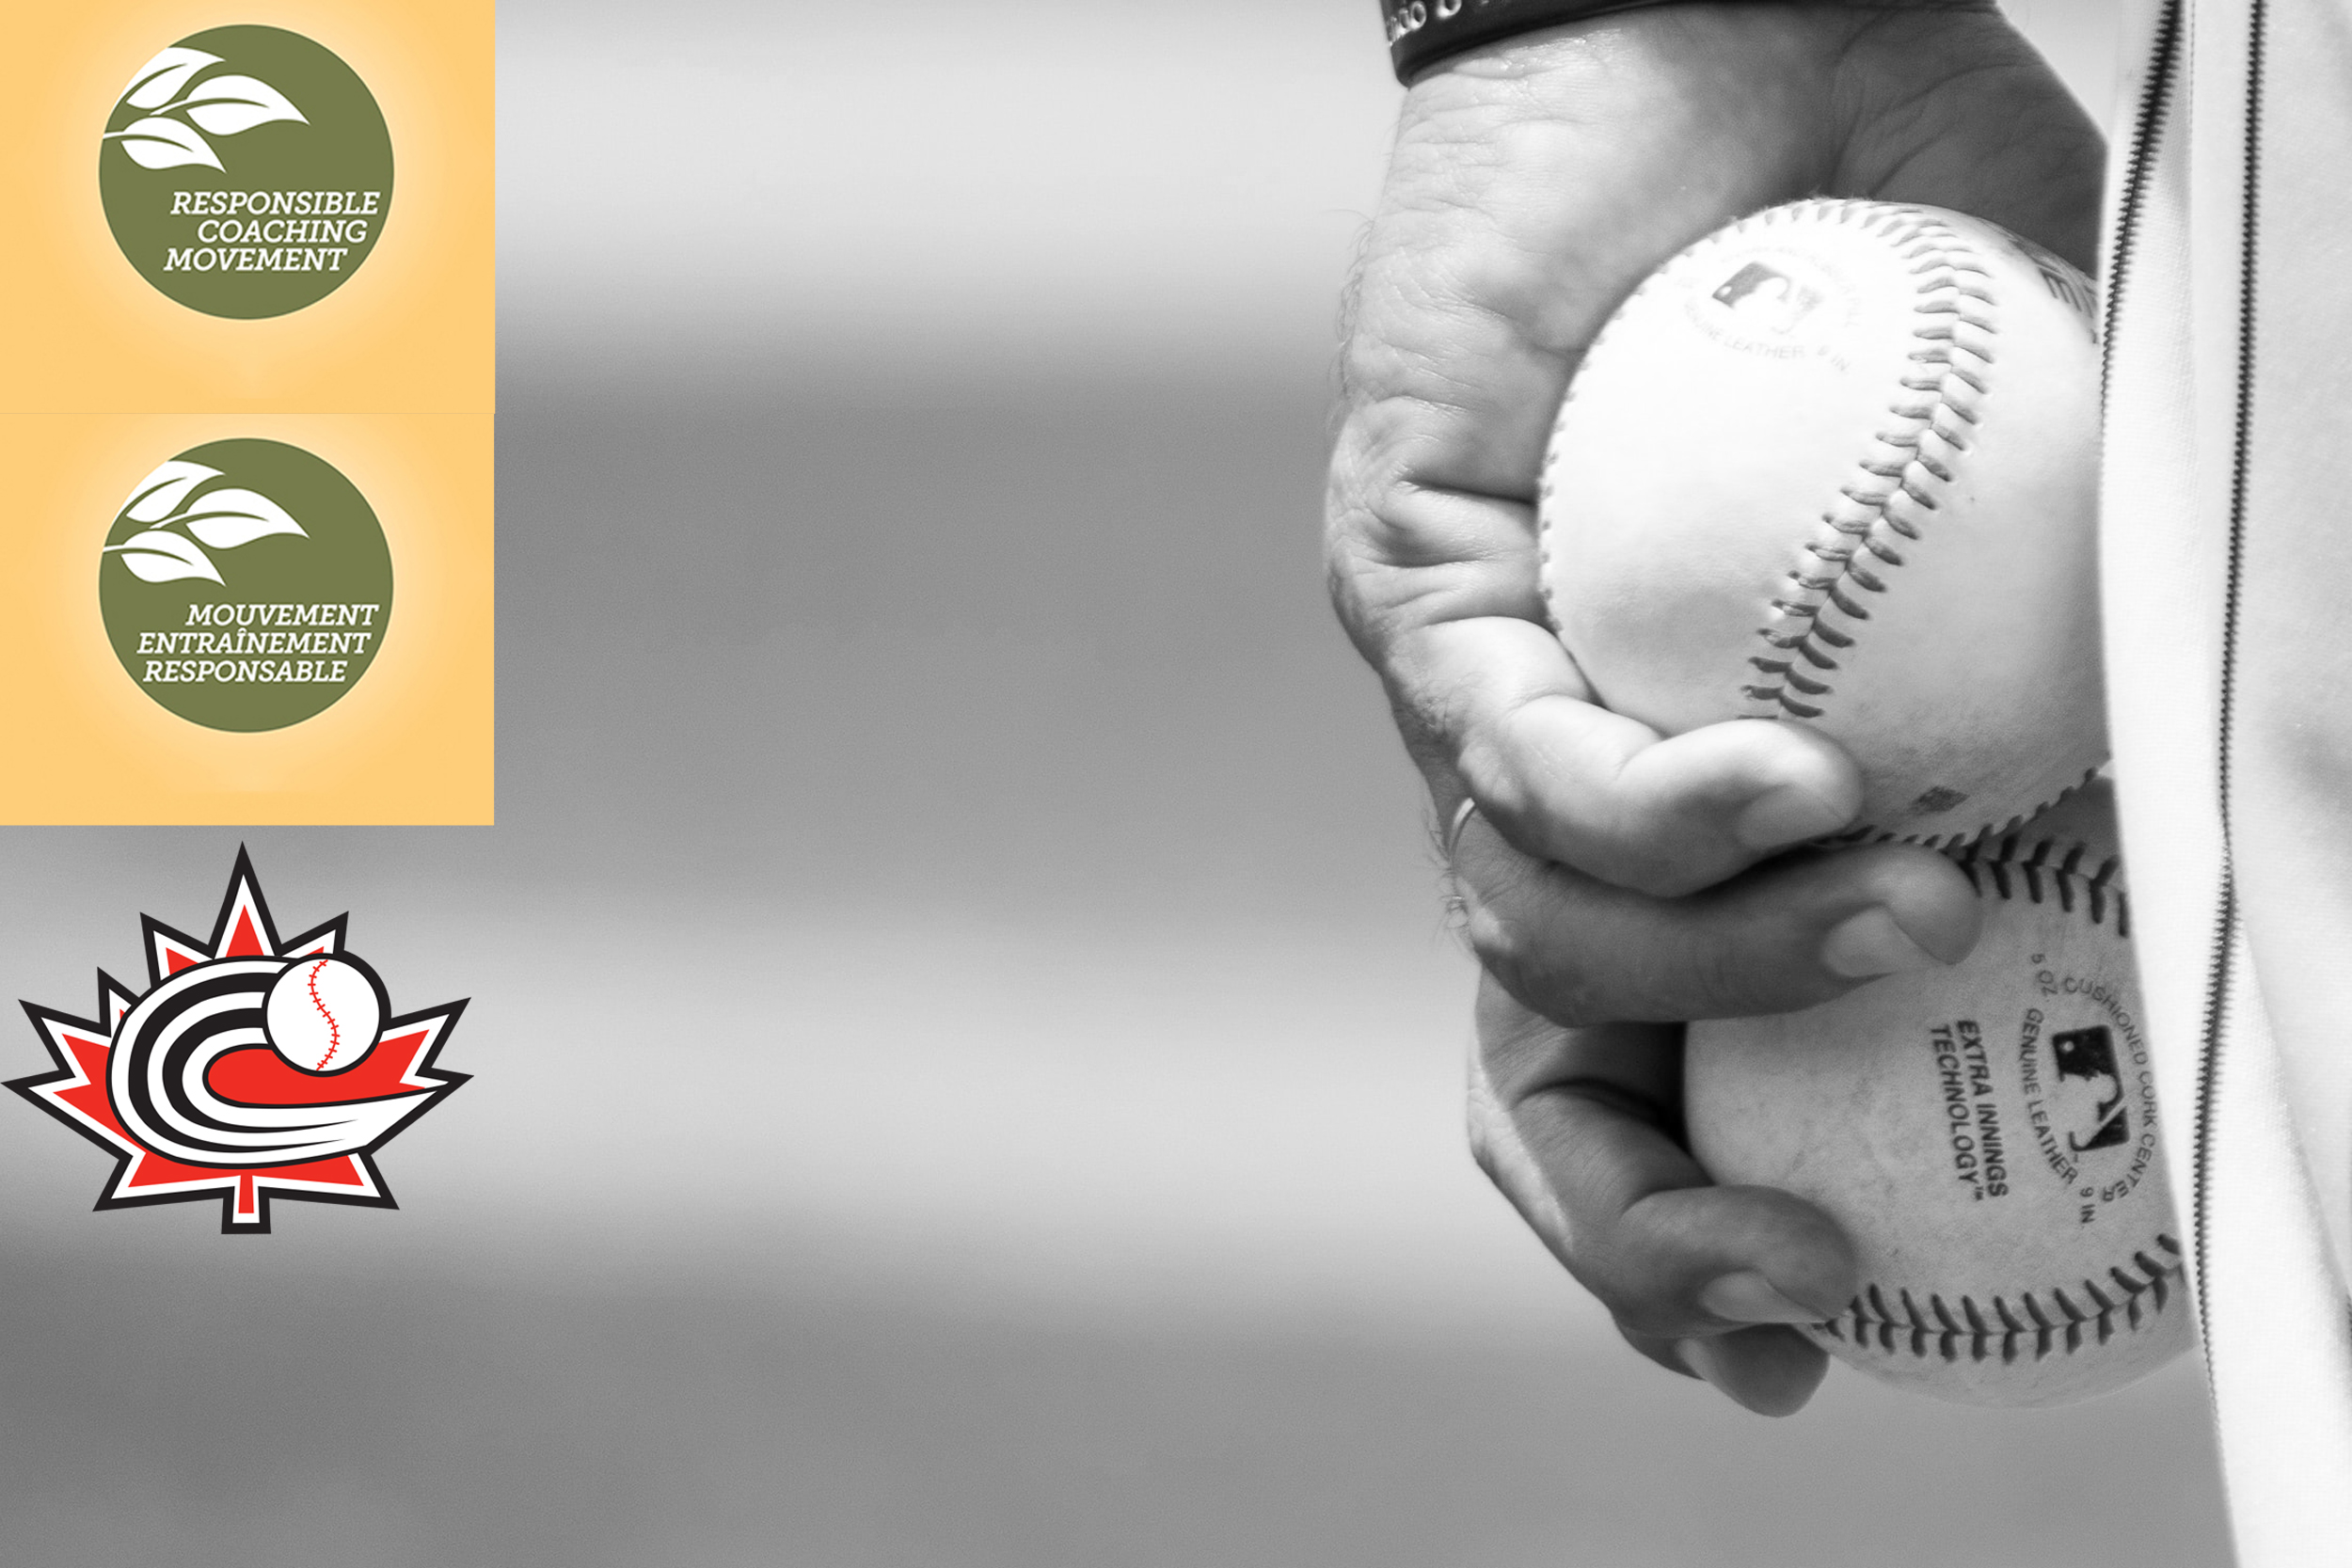 Baseball Canada takes the pledge of the Responsible Coaching Movement